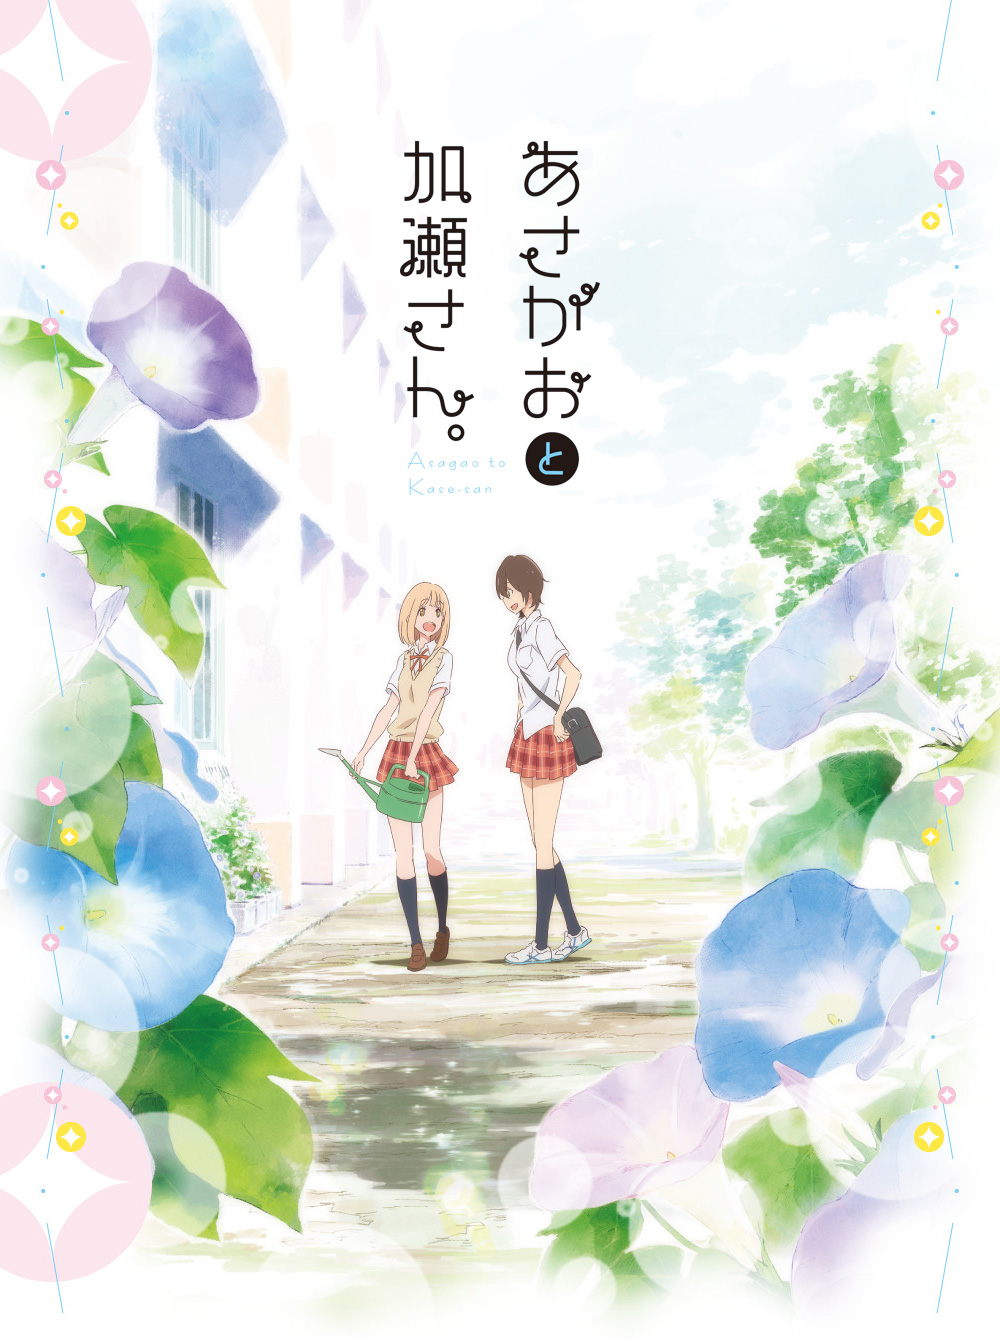 Asagao-to-Kase-san.-Anime-Visual